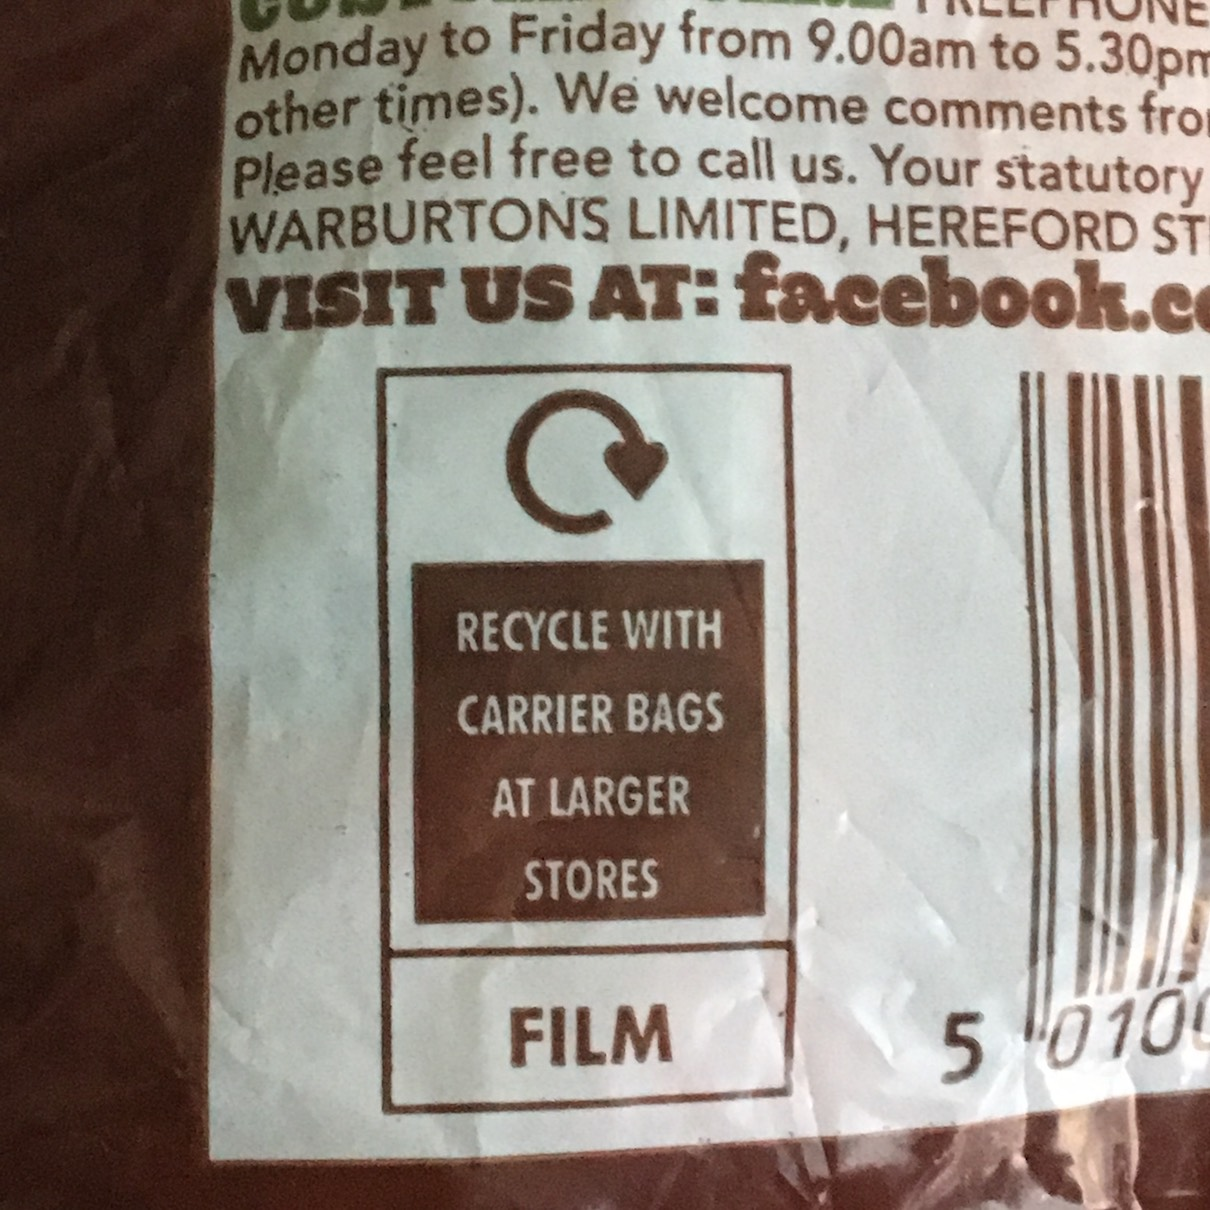 Recycle with carrier bags at larger stores logo